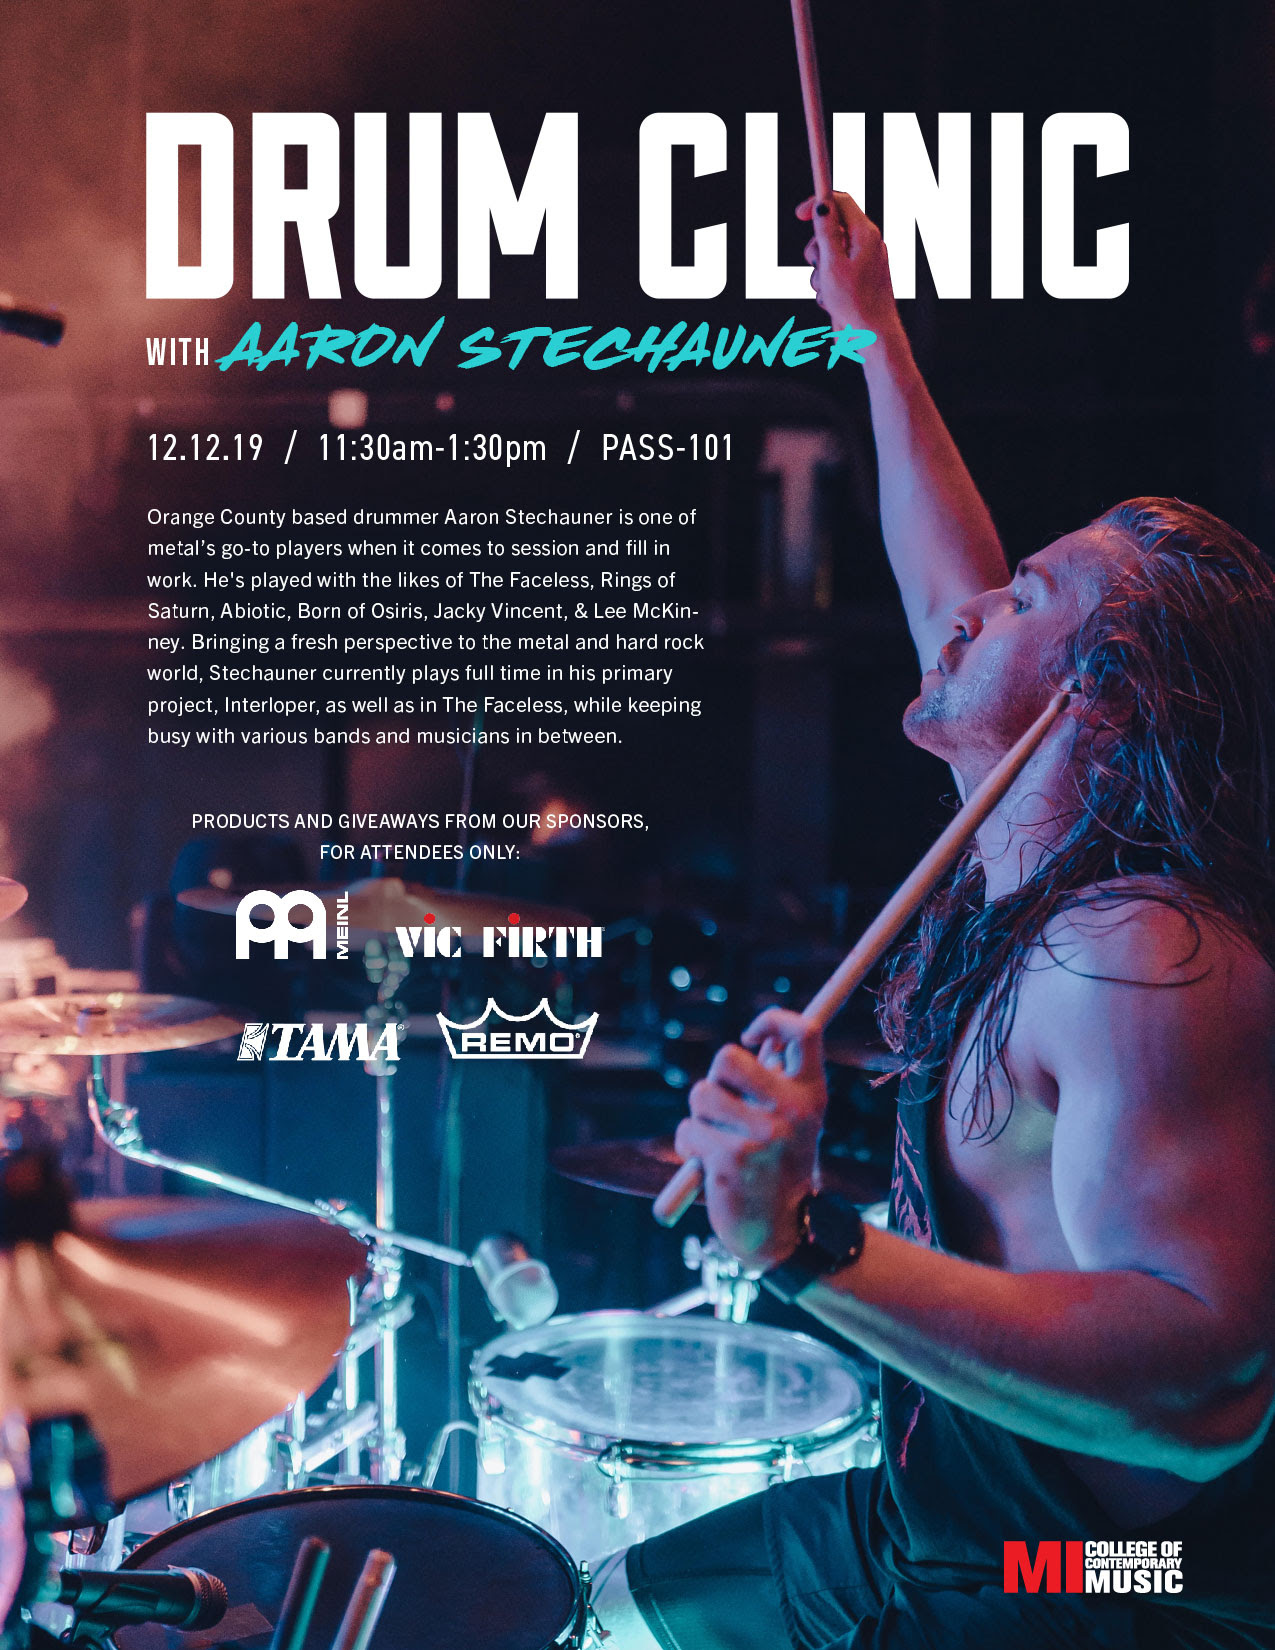 DRUM CLINIC WITH AARON STECHAUNER